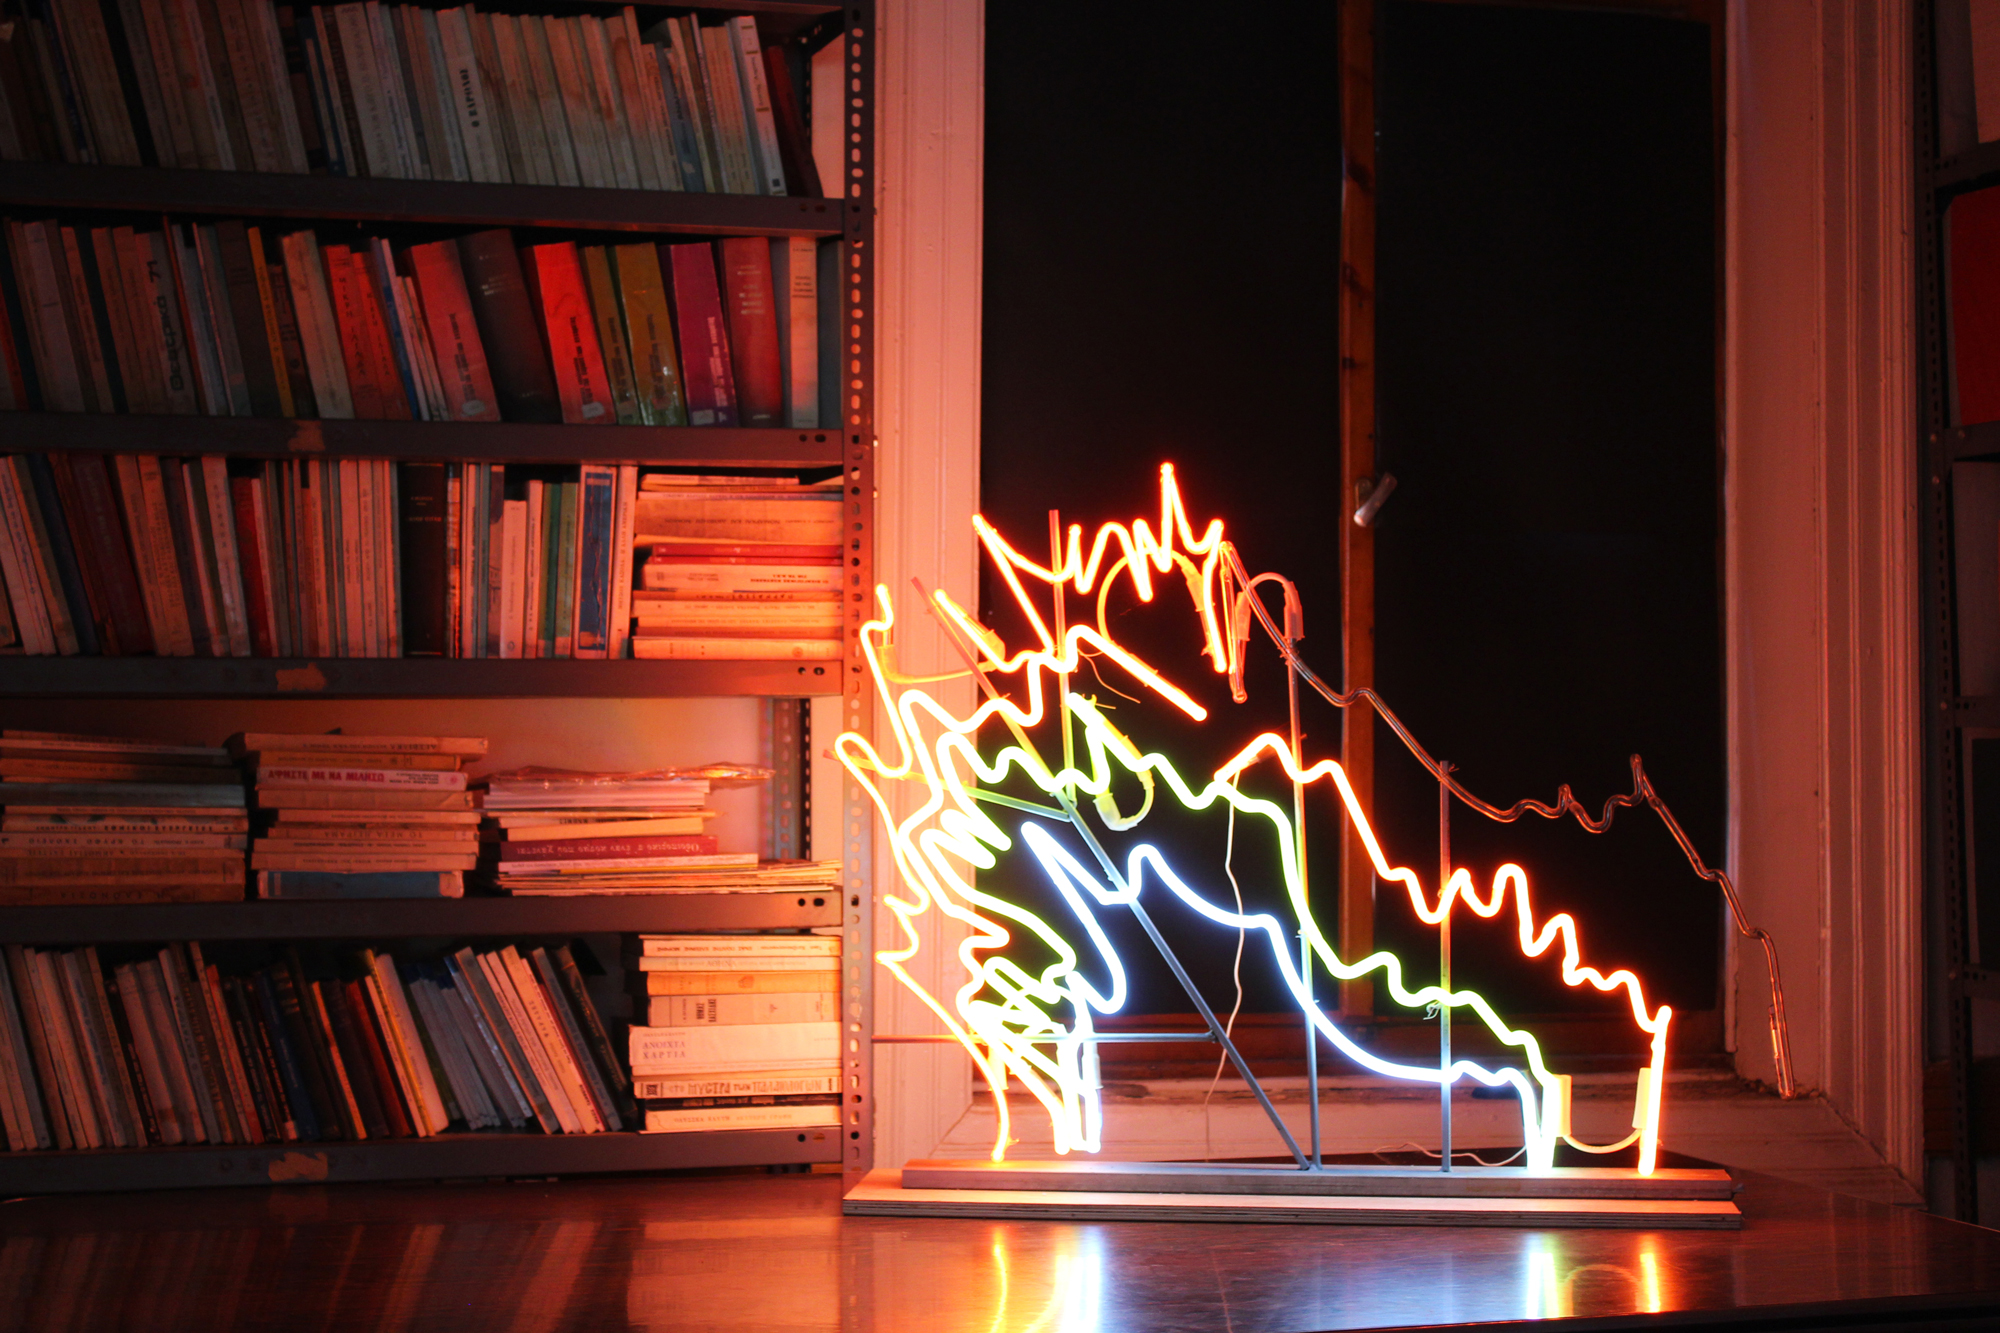 Vasilis Papageorgiou,  Homage to the Dryly Grasses , 2014, Neon lights and metal construction, 130 x 90 x 7 cm